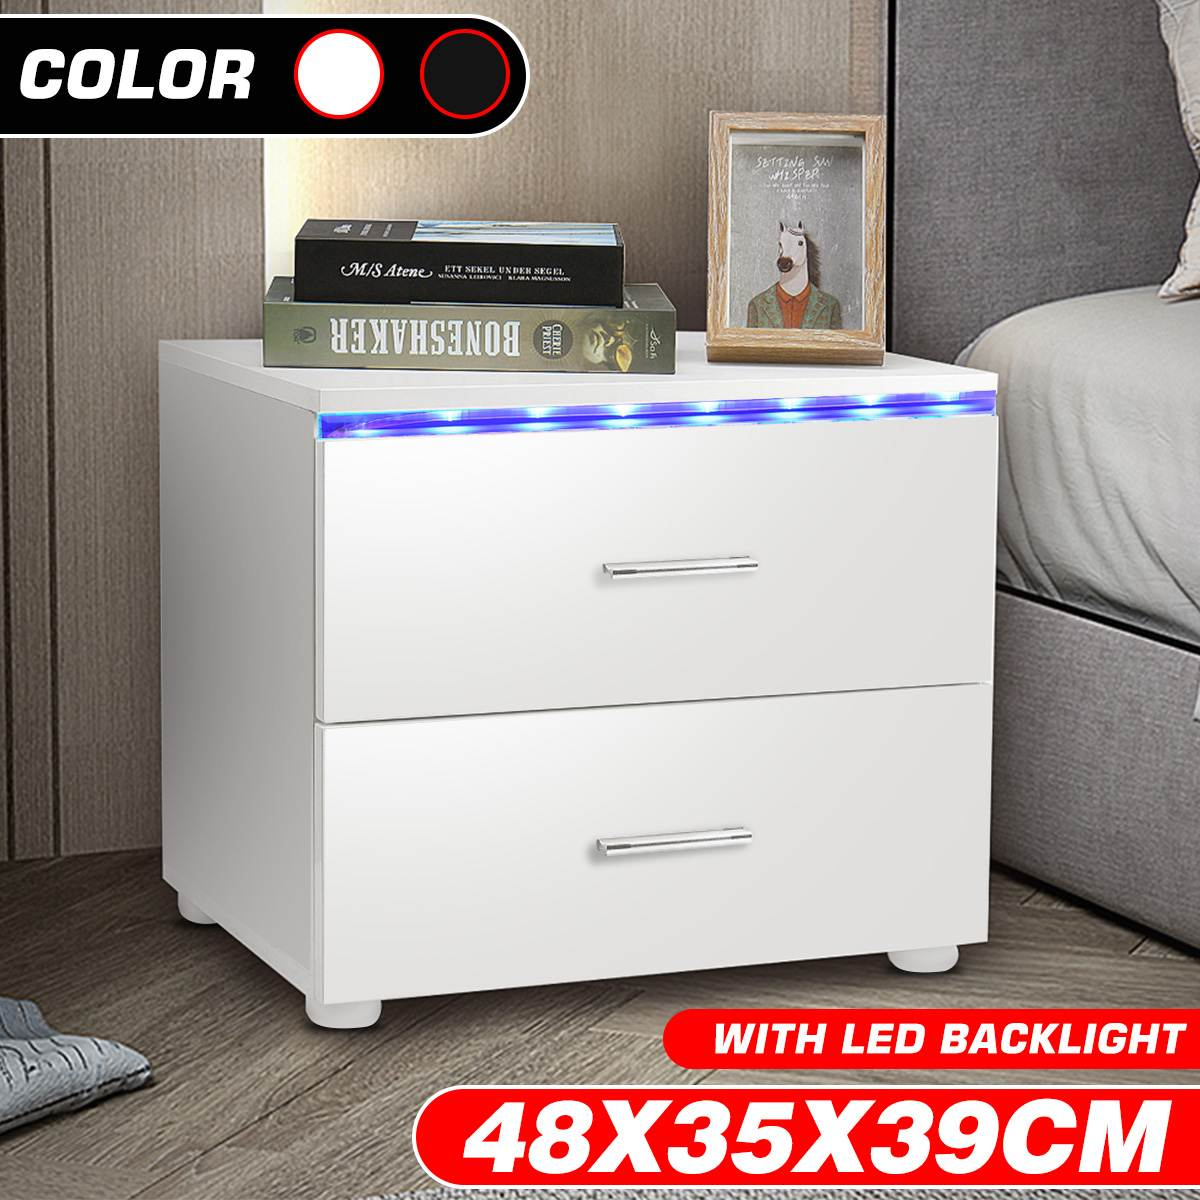 Multifunction Bedside Table High Gloss RGB LED Coffee Tables Modern Living Room Furniture Sofa side Table File Cabinet Holder